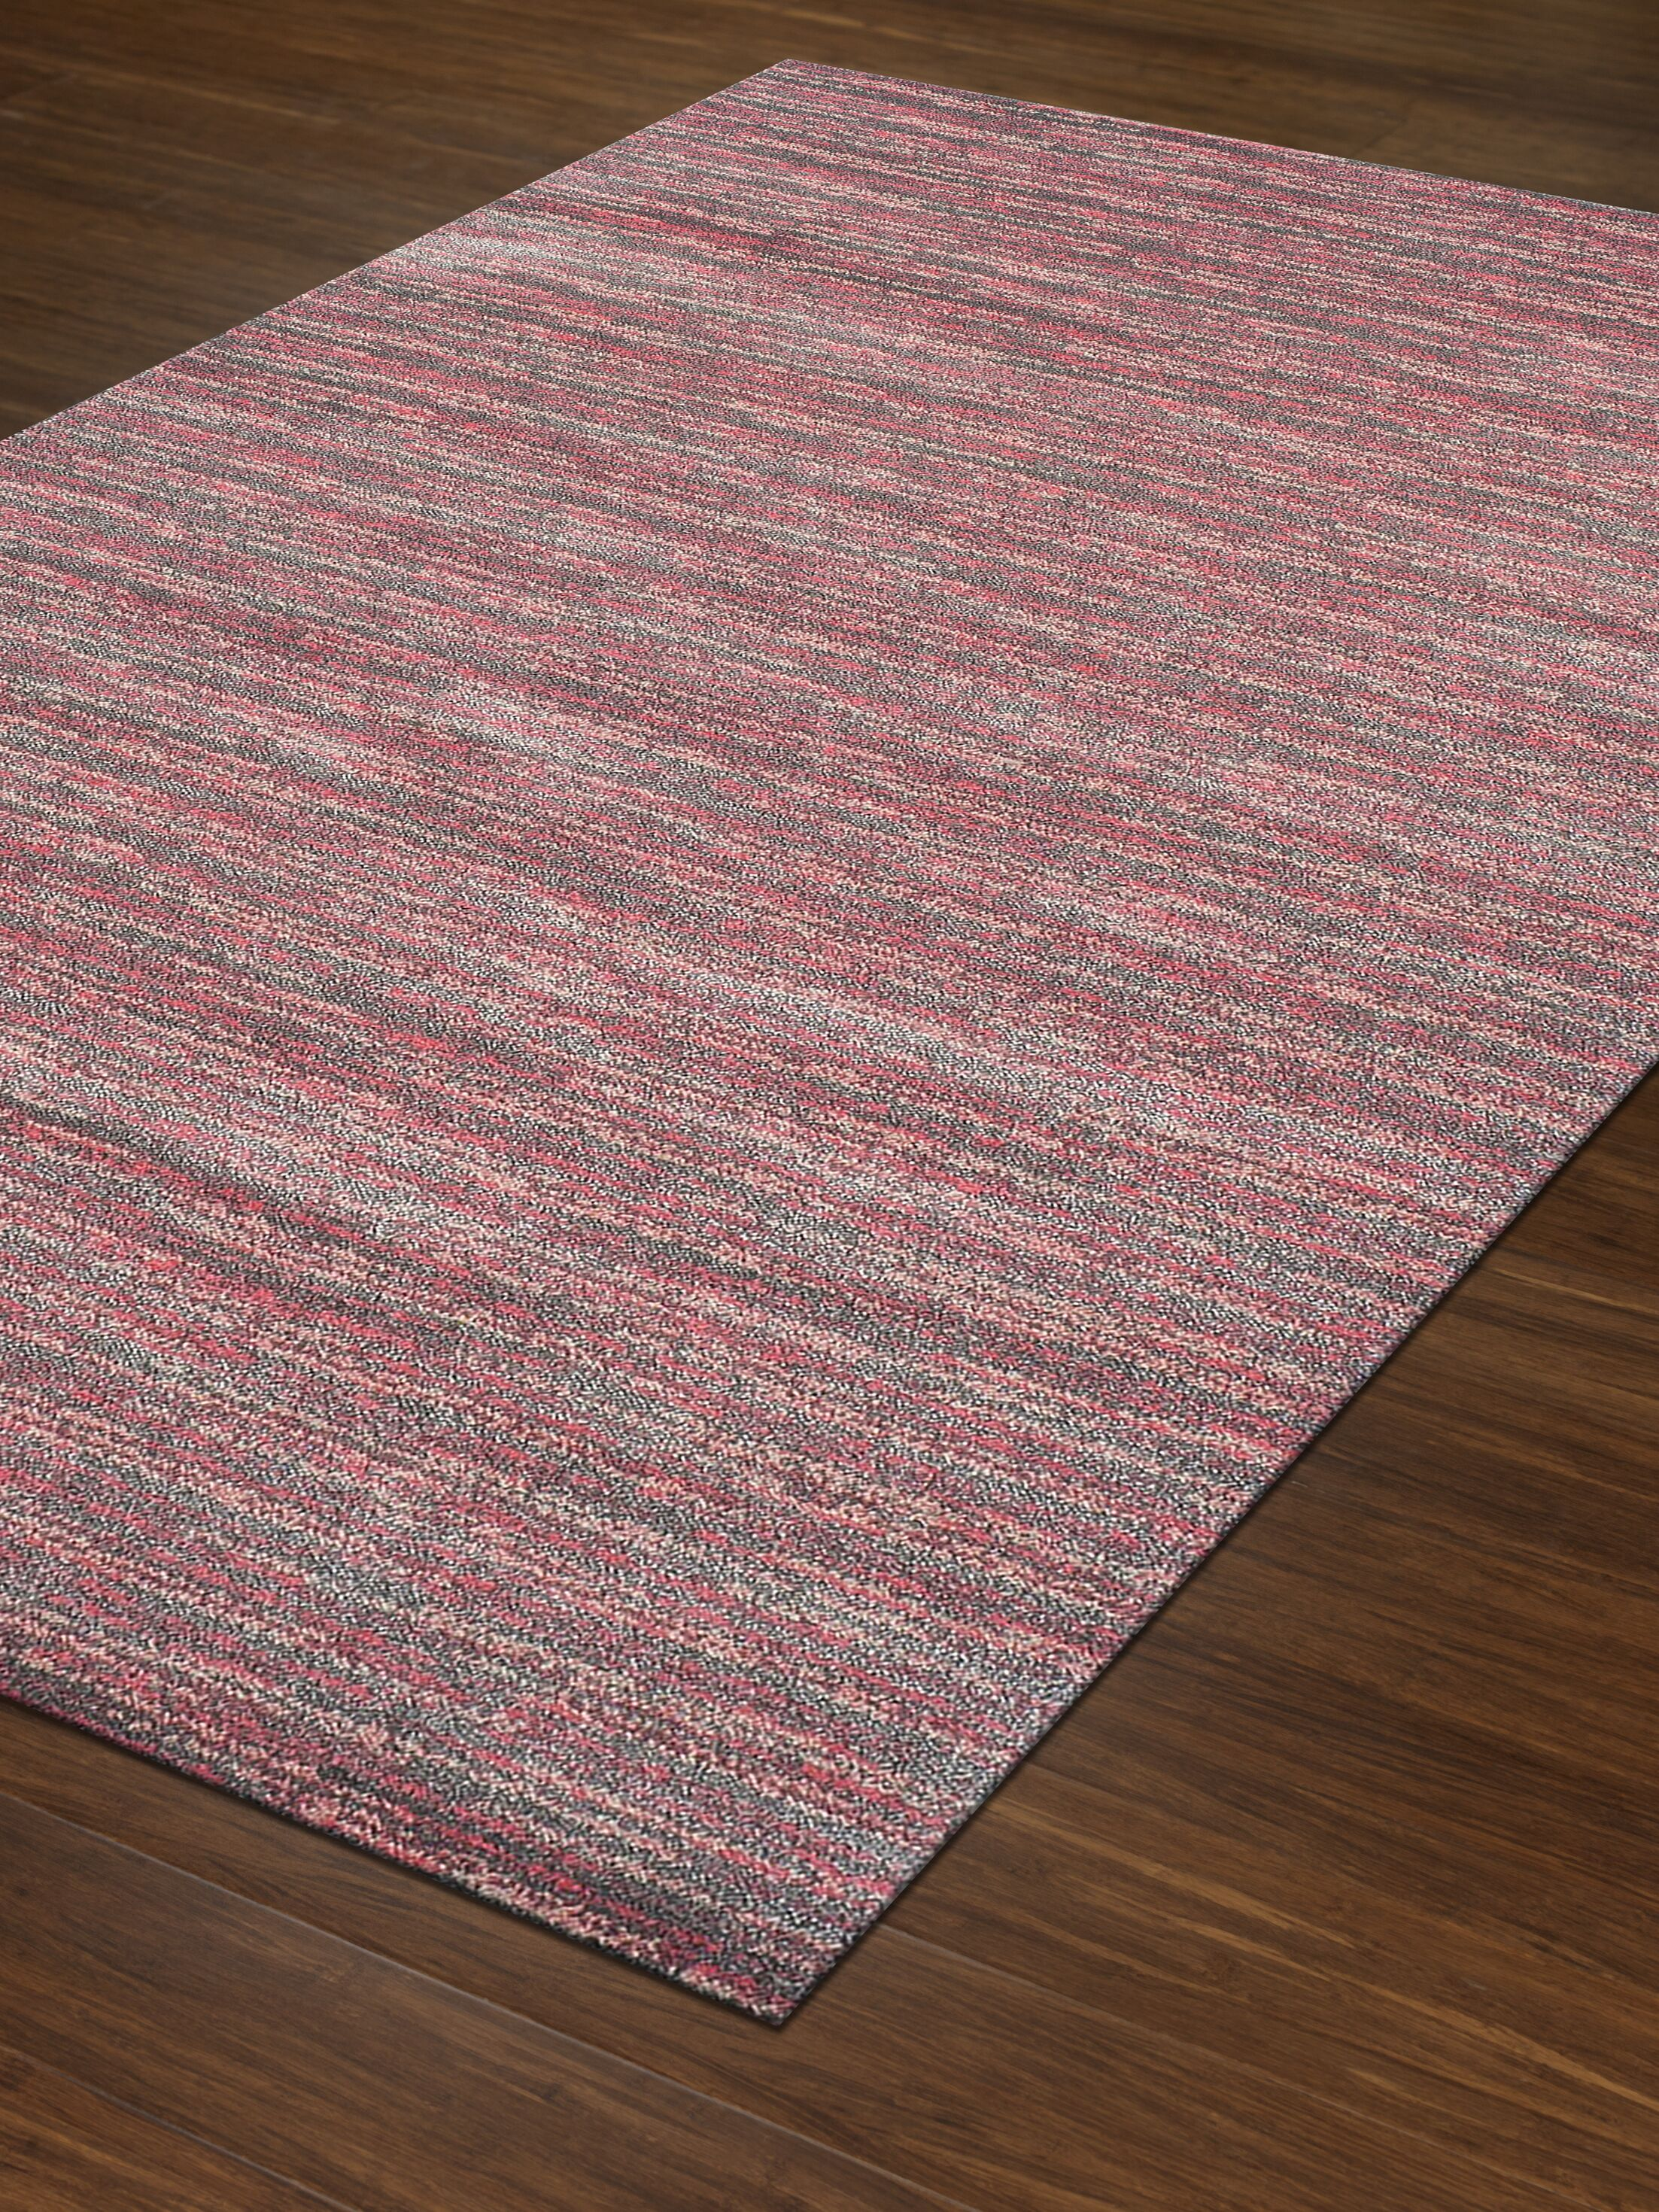 Borgo Pink Area Rug Rug Size: Rectangle 3'3